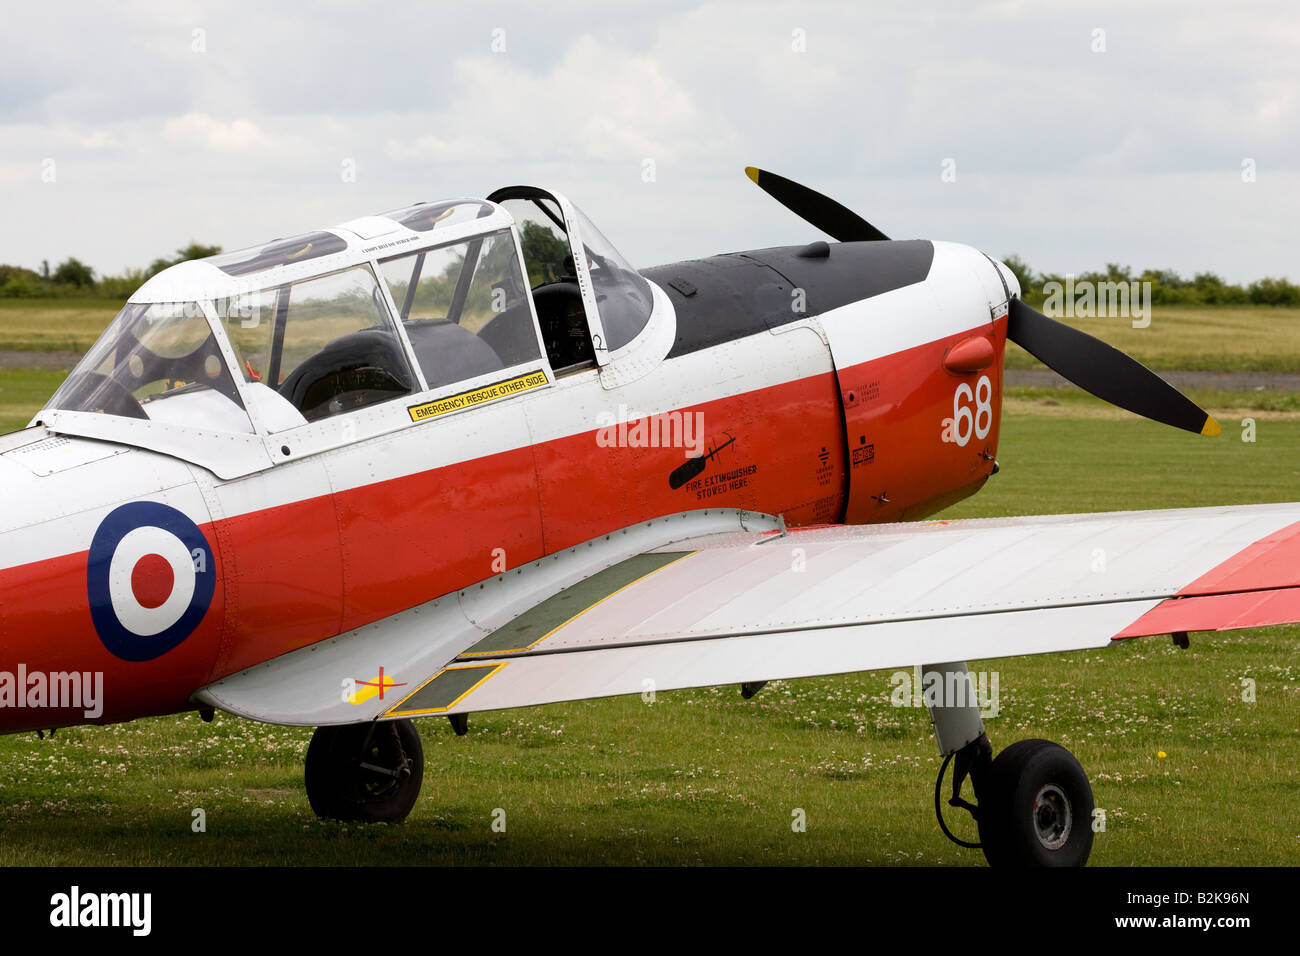 DeHavilland (Canada) DHC-1 Chipmunk 22 T10 WD390 68 G-BW*** parked at Wickenby Airfield - Stock Image